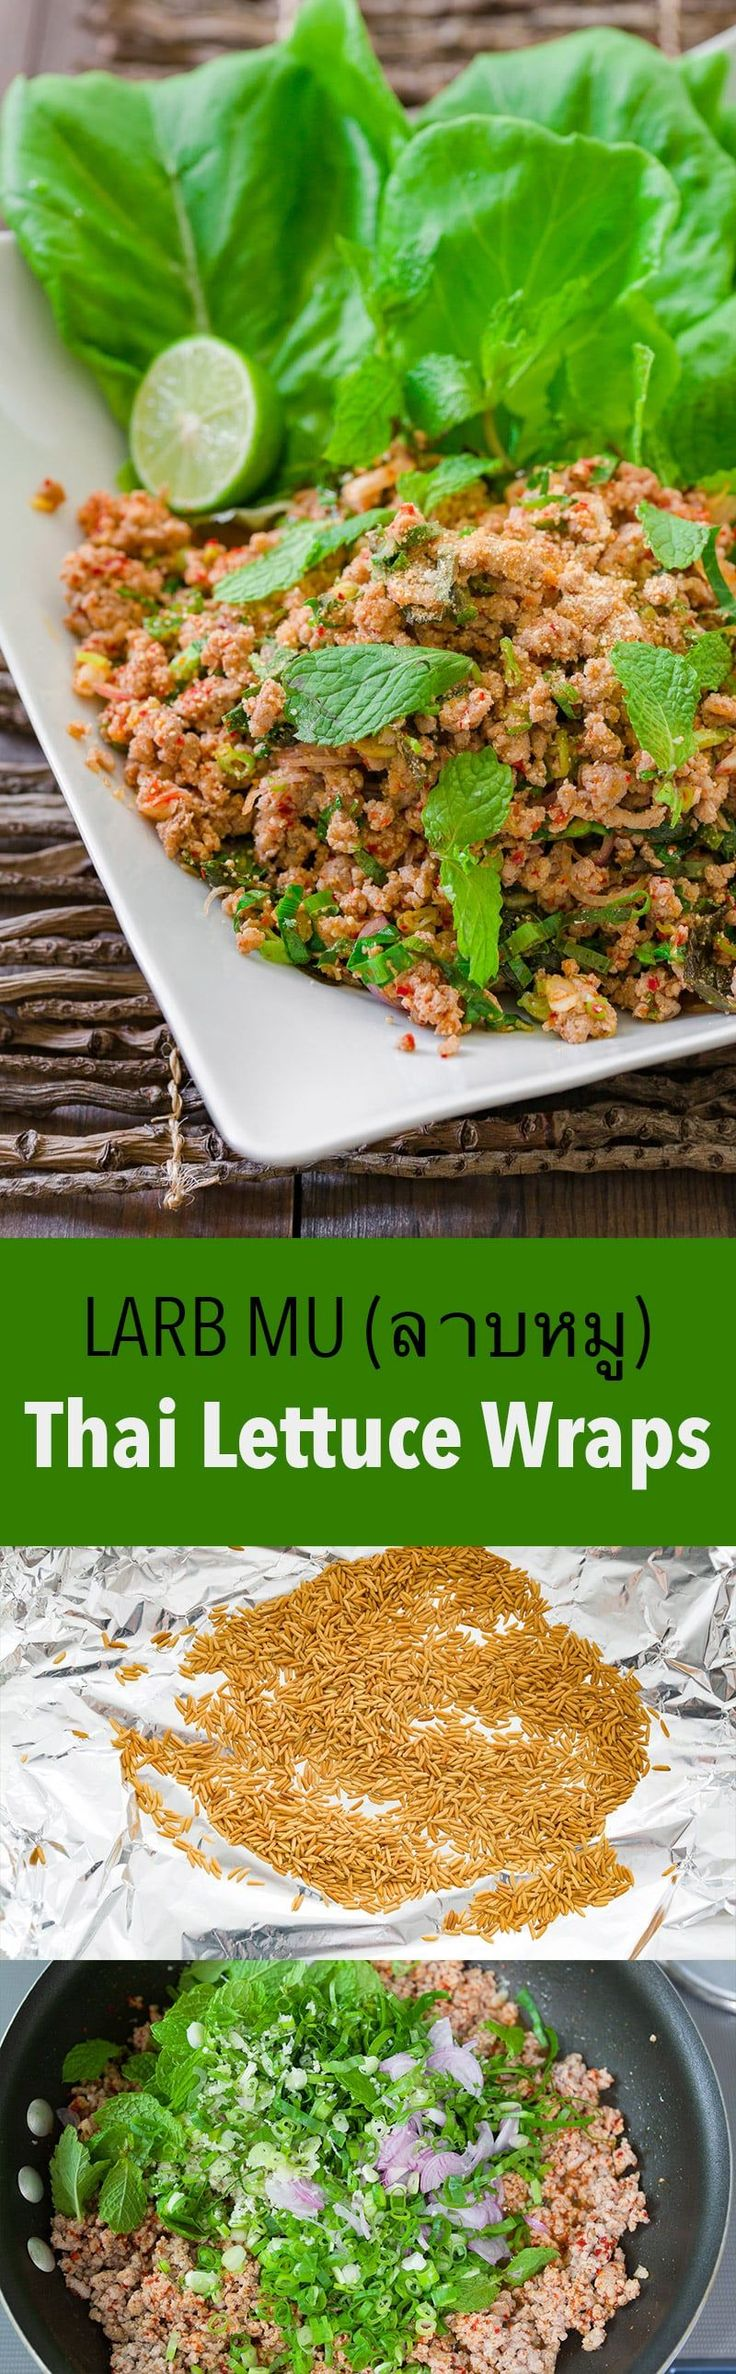 """Larb Mu (ลาบหมู), or """"pork larb"""" is an easy Isan Thai/Lao salad made with ground meat, mint, lemongrass, chilies, and a tart and savory dressing."""